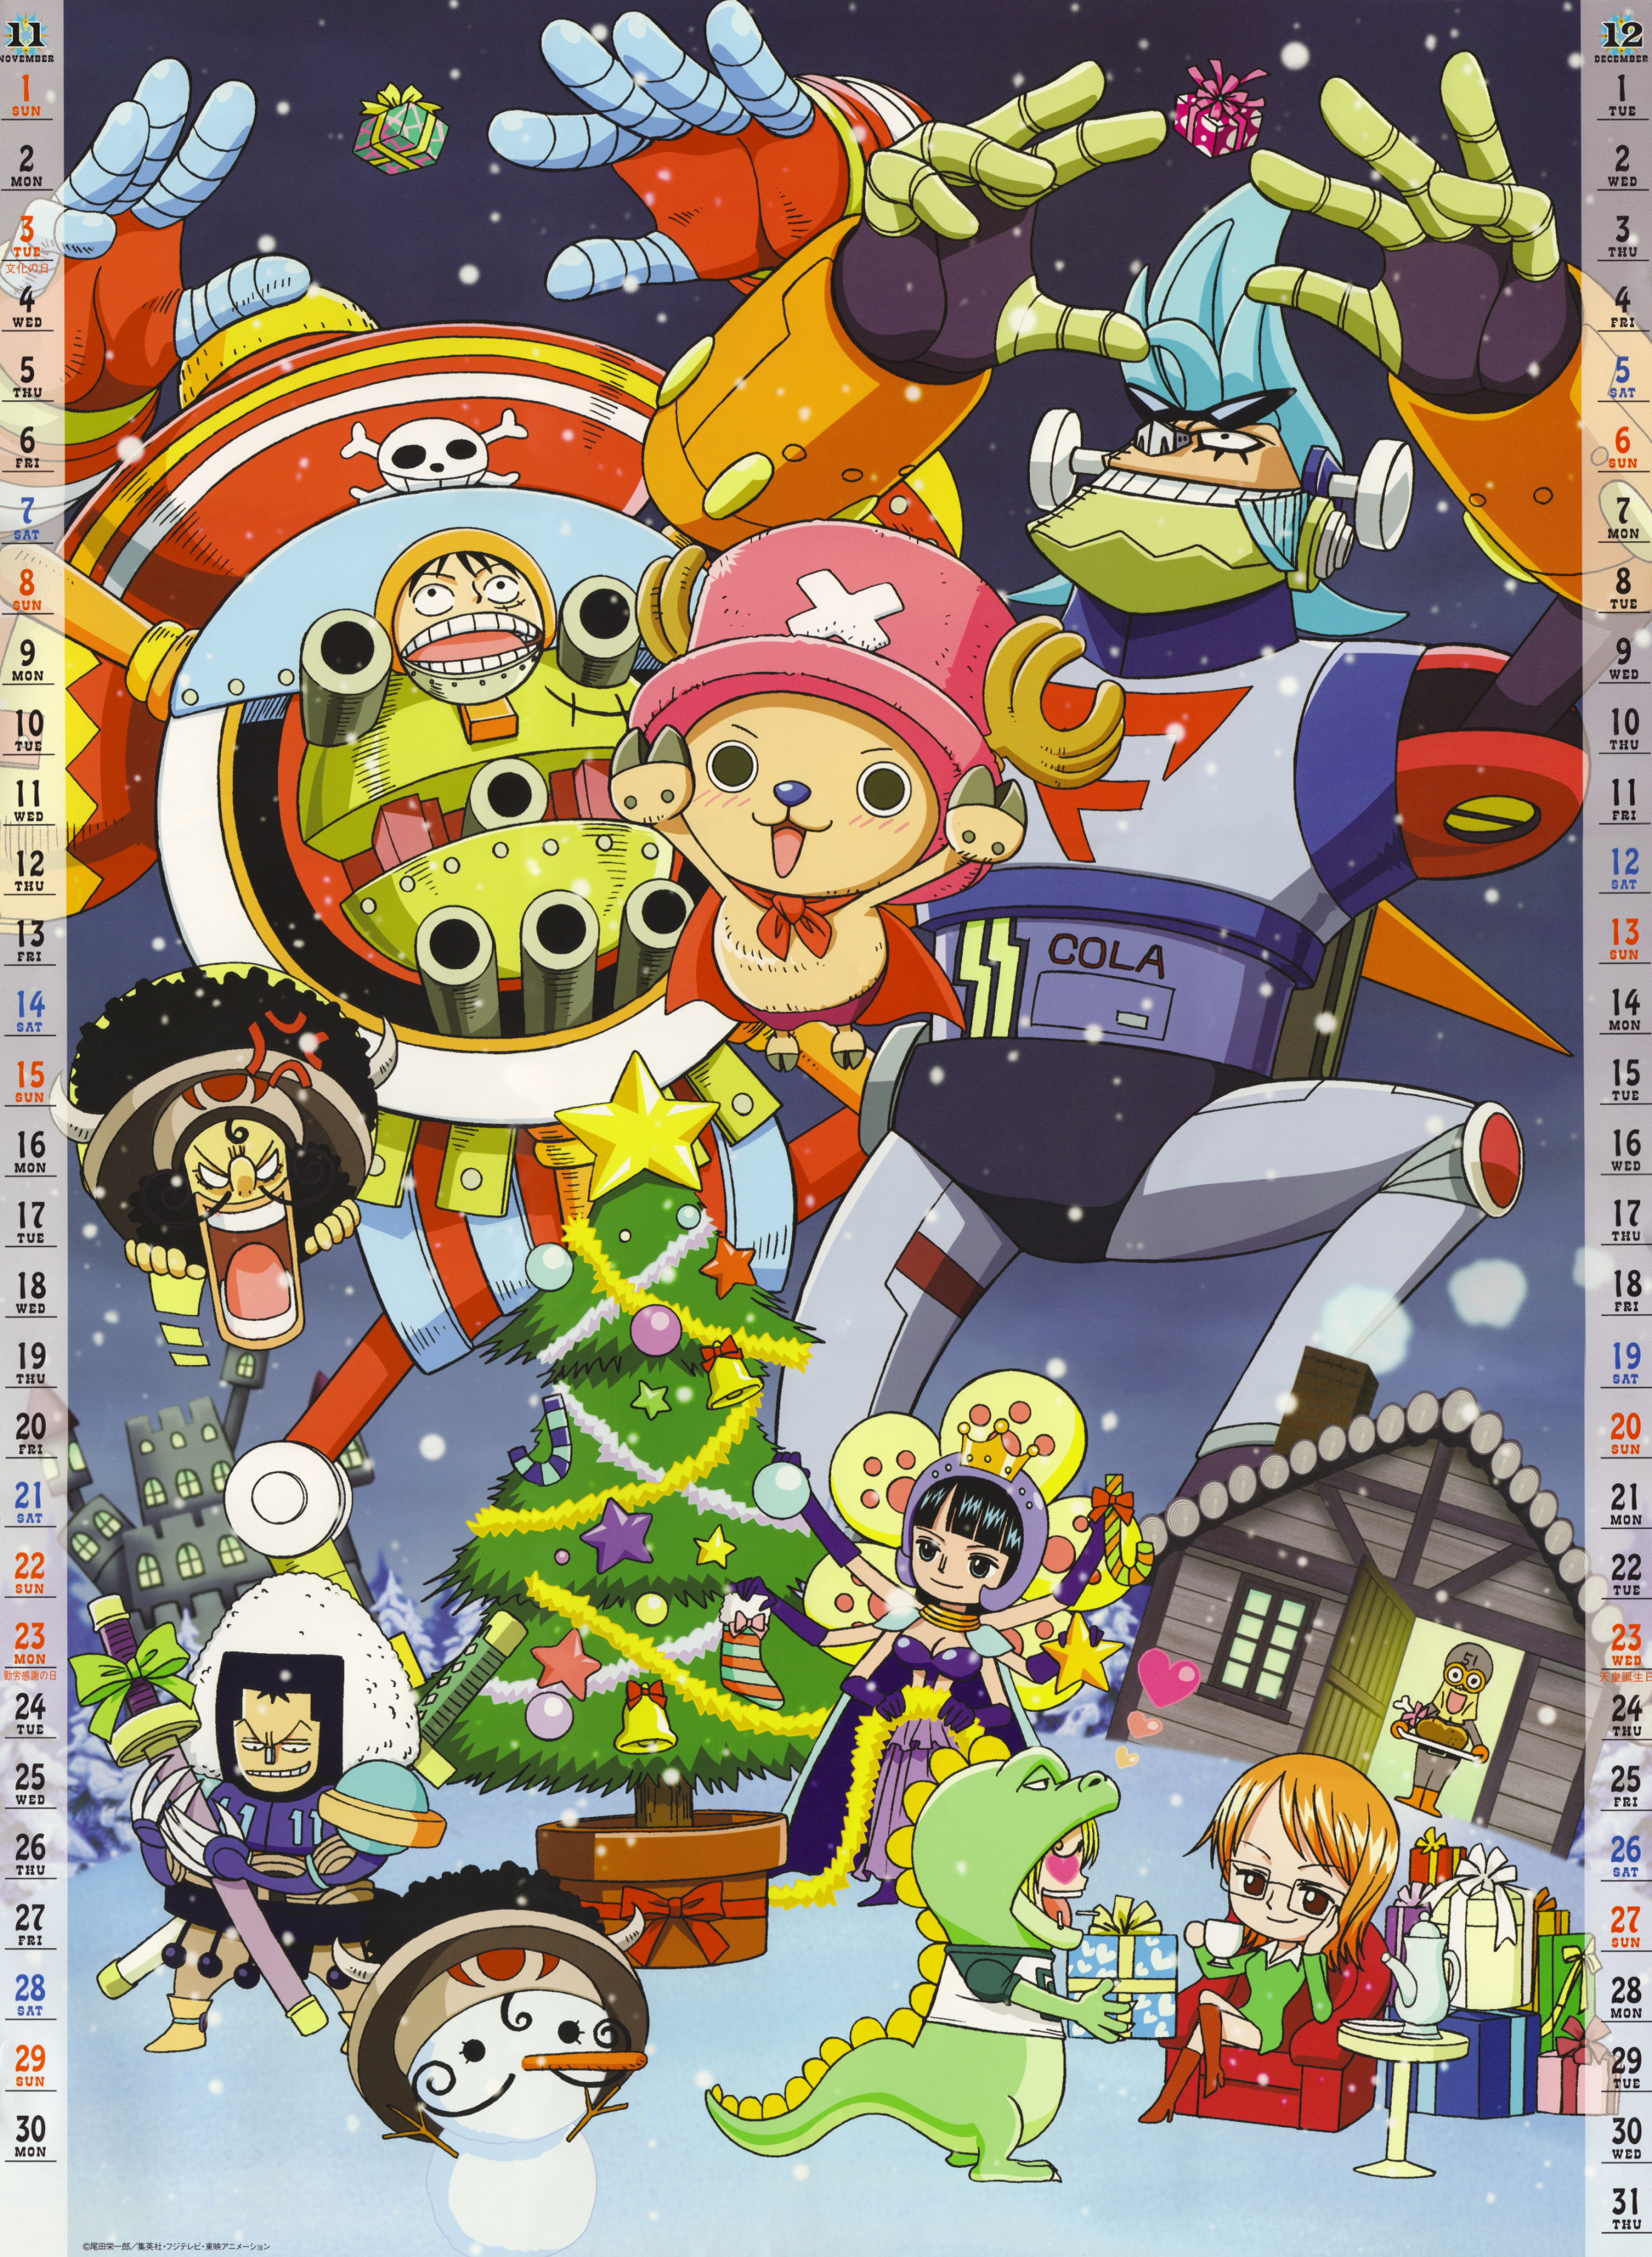 11-12 Christmas (One Piece 2009 Calendar)